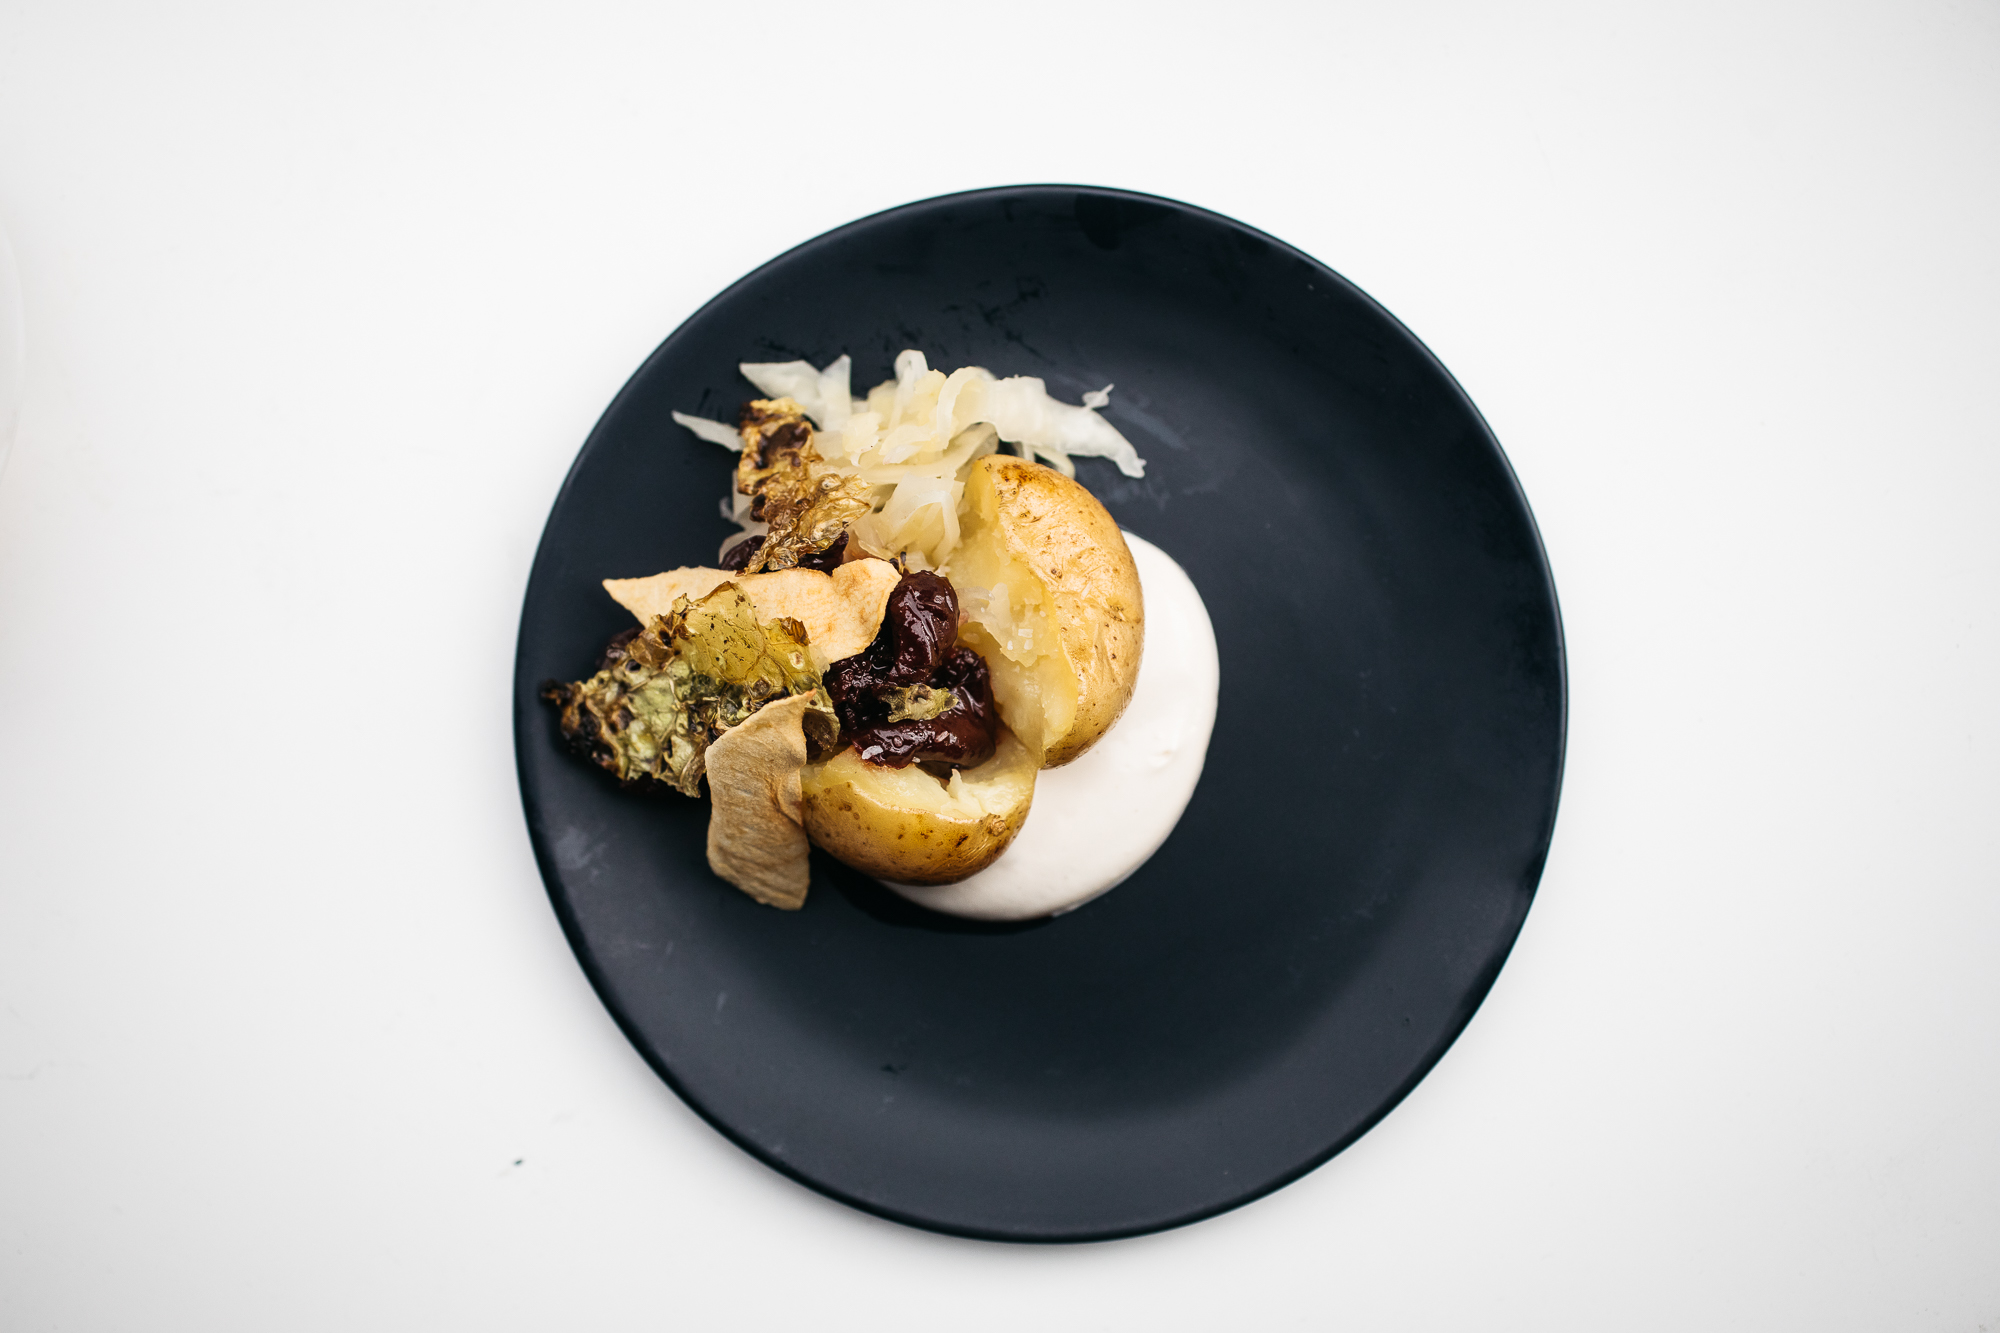 Course 7: Potato, cabbage and apple kraut with sour cherry yogurt and dried apples (Image: Betty Clicker Photography)